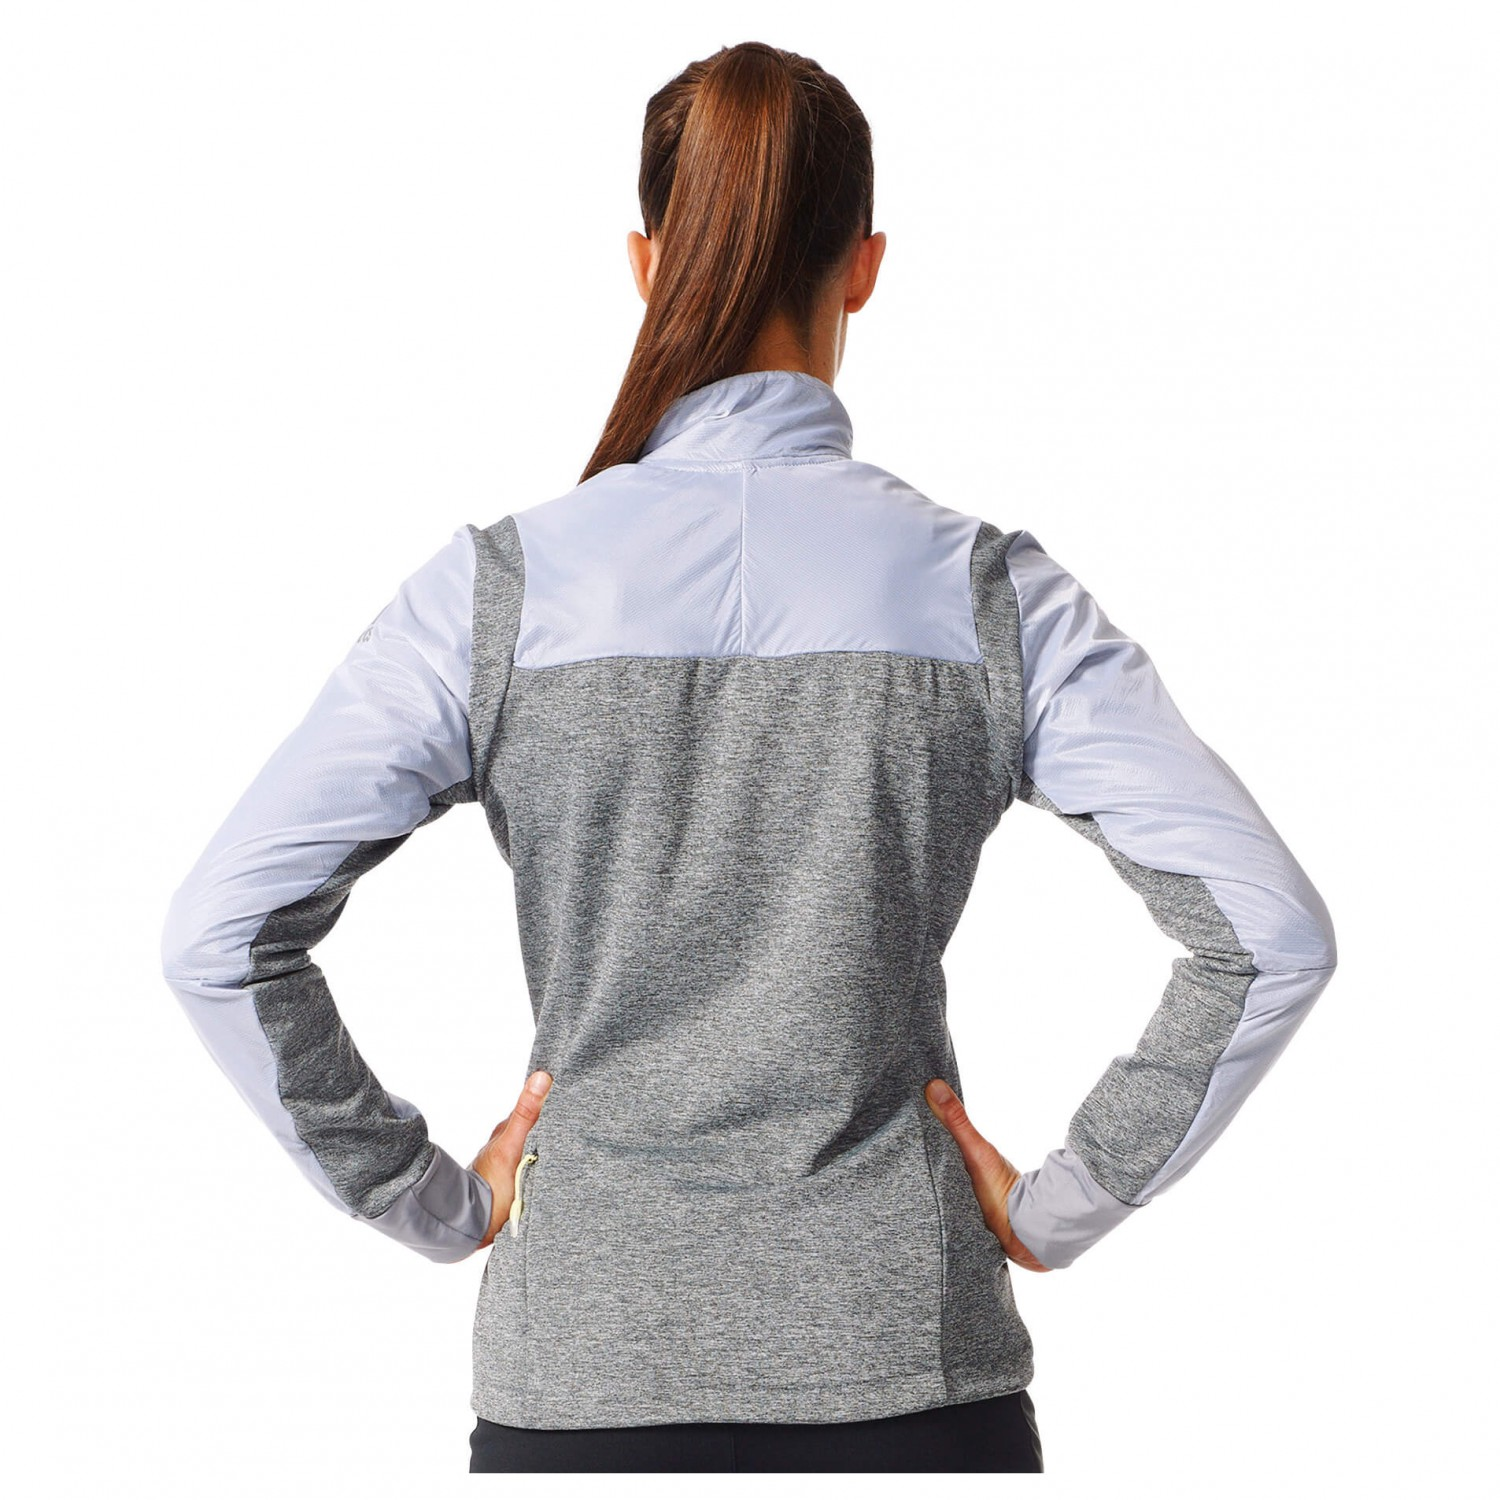 adidas xperior edge jacket veste de running femme livraison gratuite. Black Bedroom Furniture Sets. Home Design Ideas